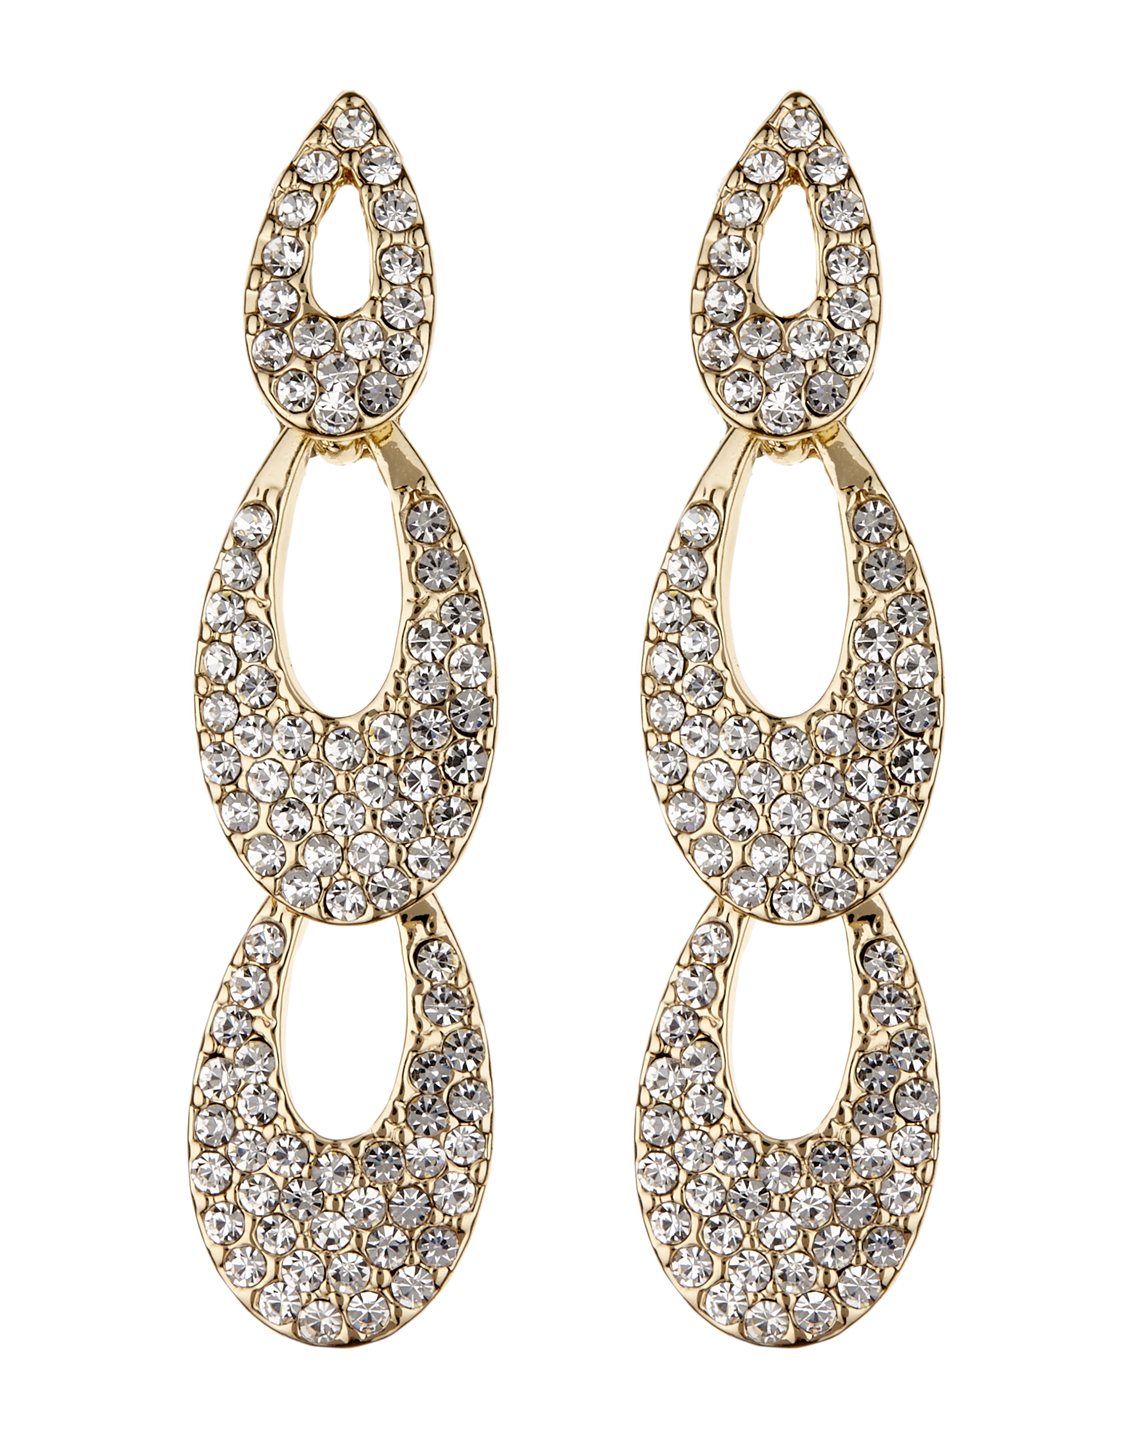 Clip On Earrings - Blake G - gold drop earring with clear crystals